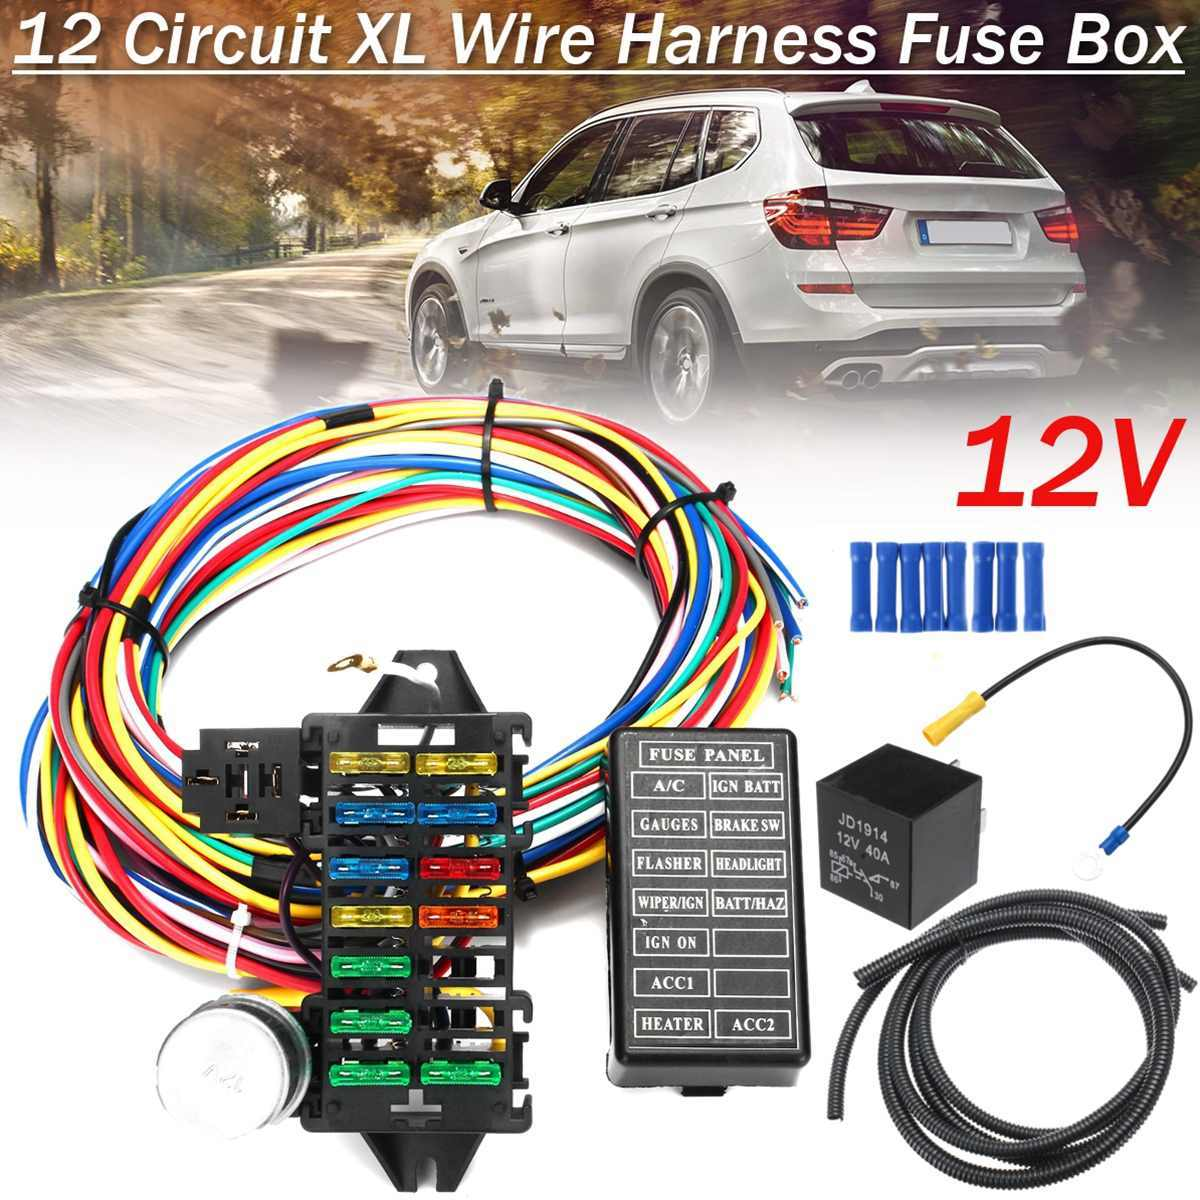 12 circuit universal wiring harness 14 fuse 12v muscle car hot rod street rod xl wires [ 1200 x 1200 Pixel ]